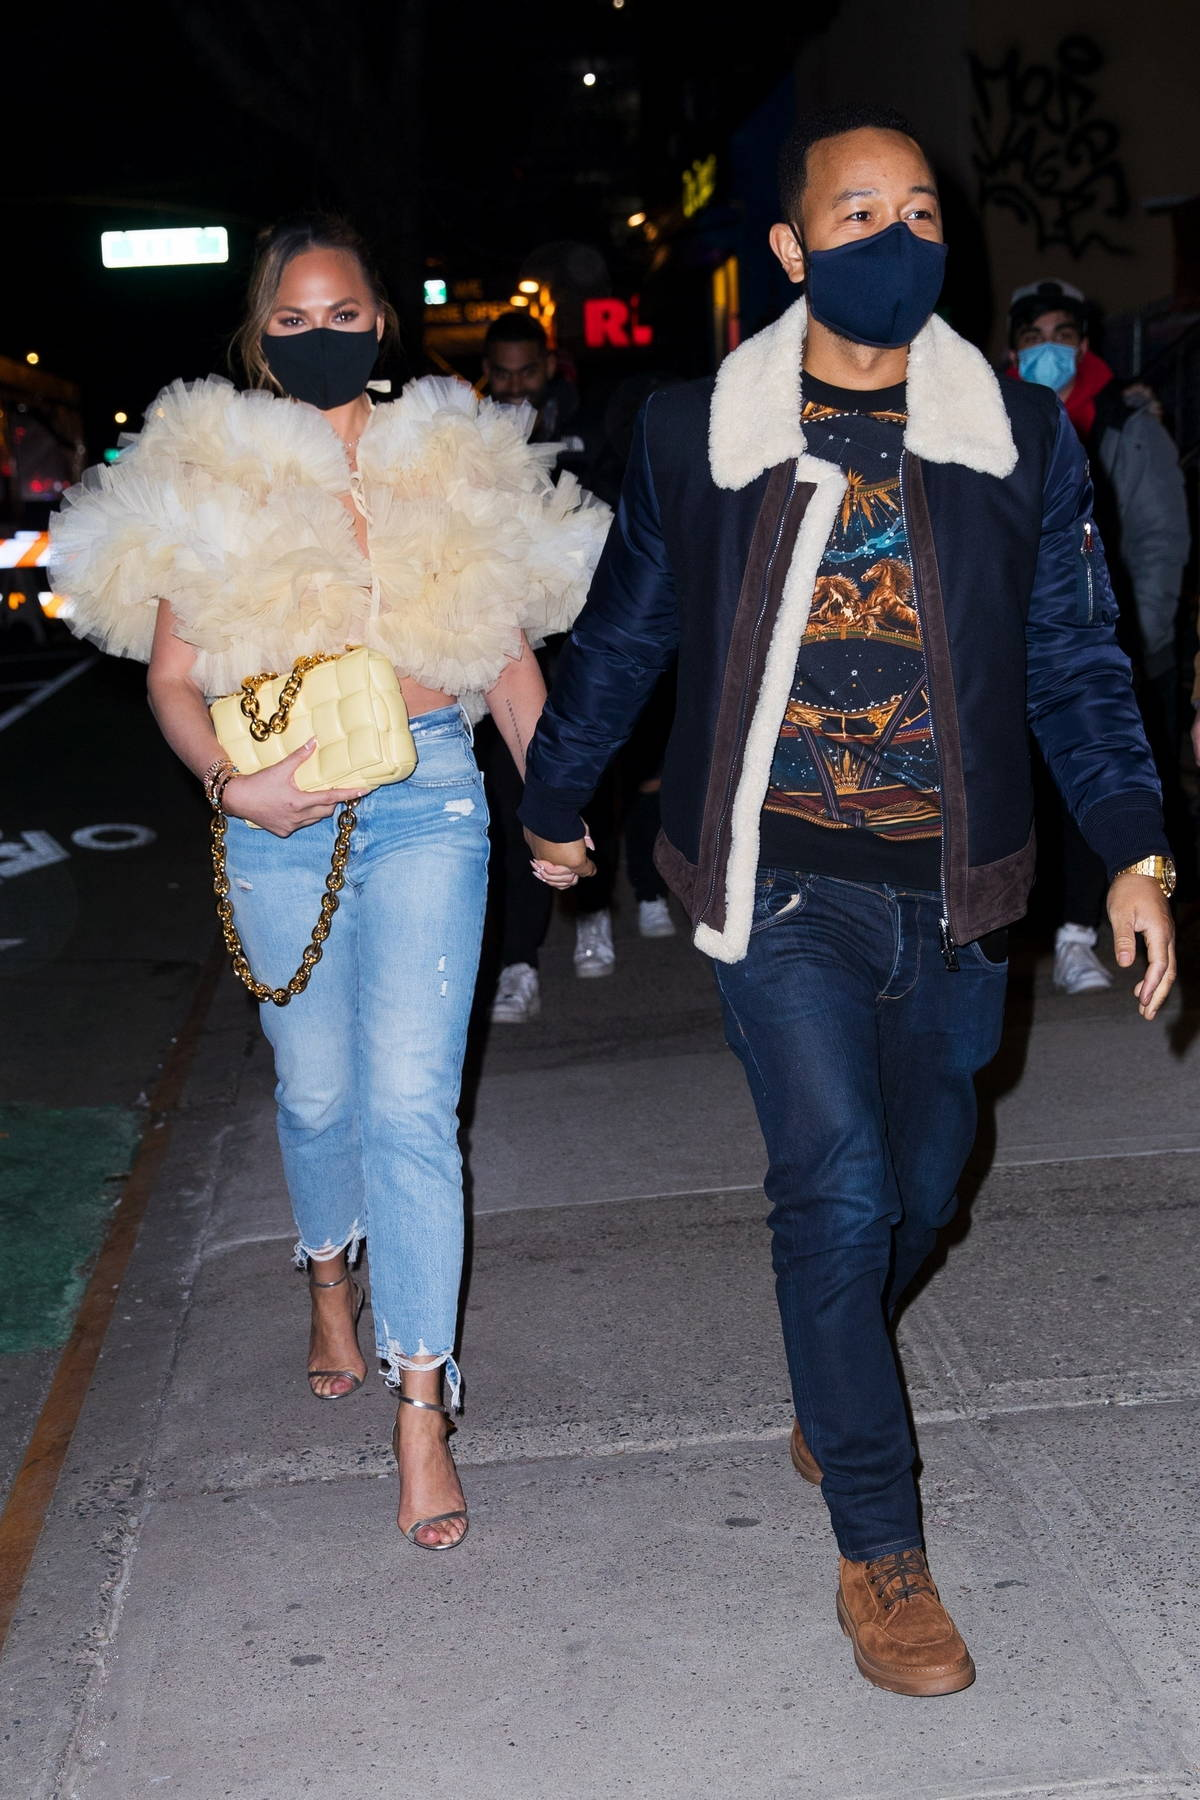 Chrissy Teigen and John Legend keep it stylish as they head to dinner at Panna Il Garden in New York City